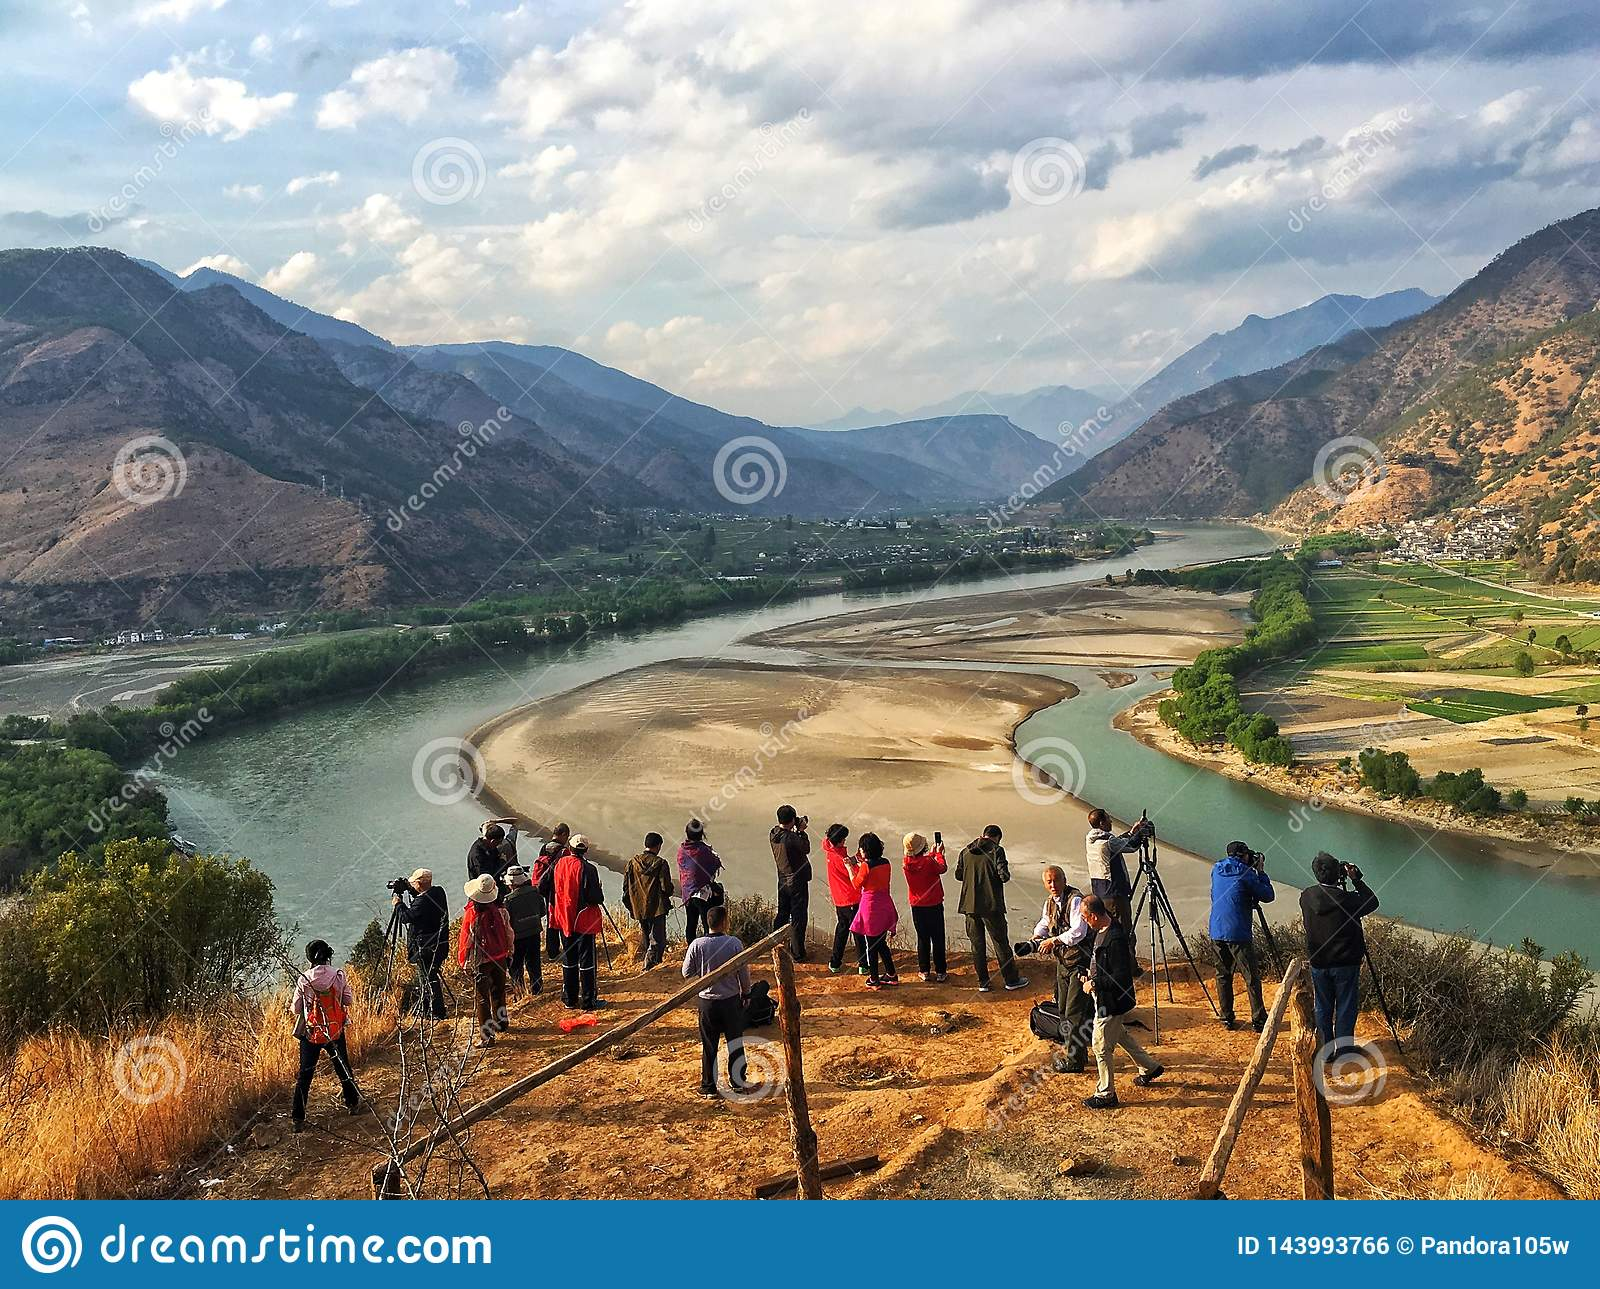 A passage of the Yangtze river in yunnan province, China.